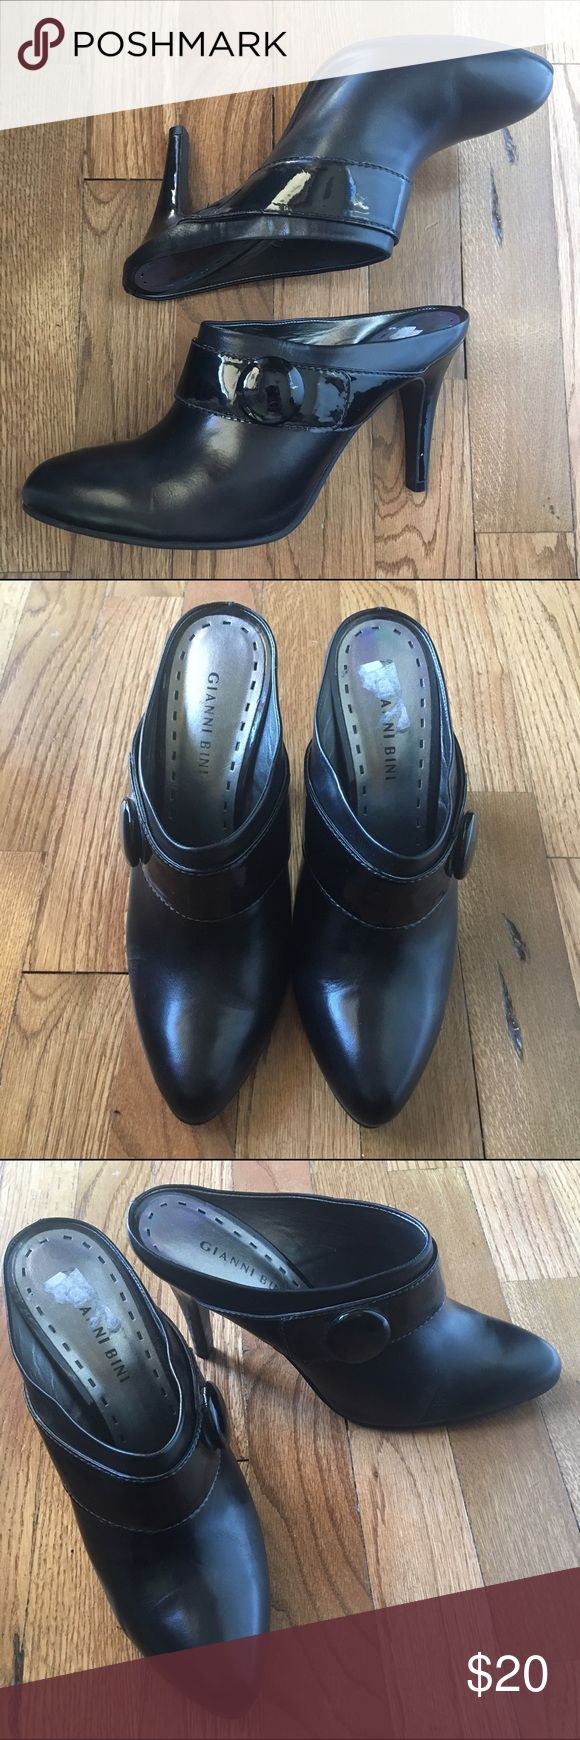 Gianni Bini black slip on heels Adorable slip on heels with button. Patent heel and strap. Have only been worn a couple of times. Gianni Bini Shoes Heels